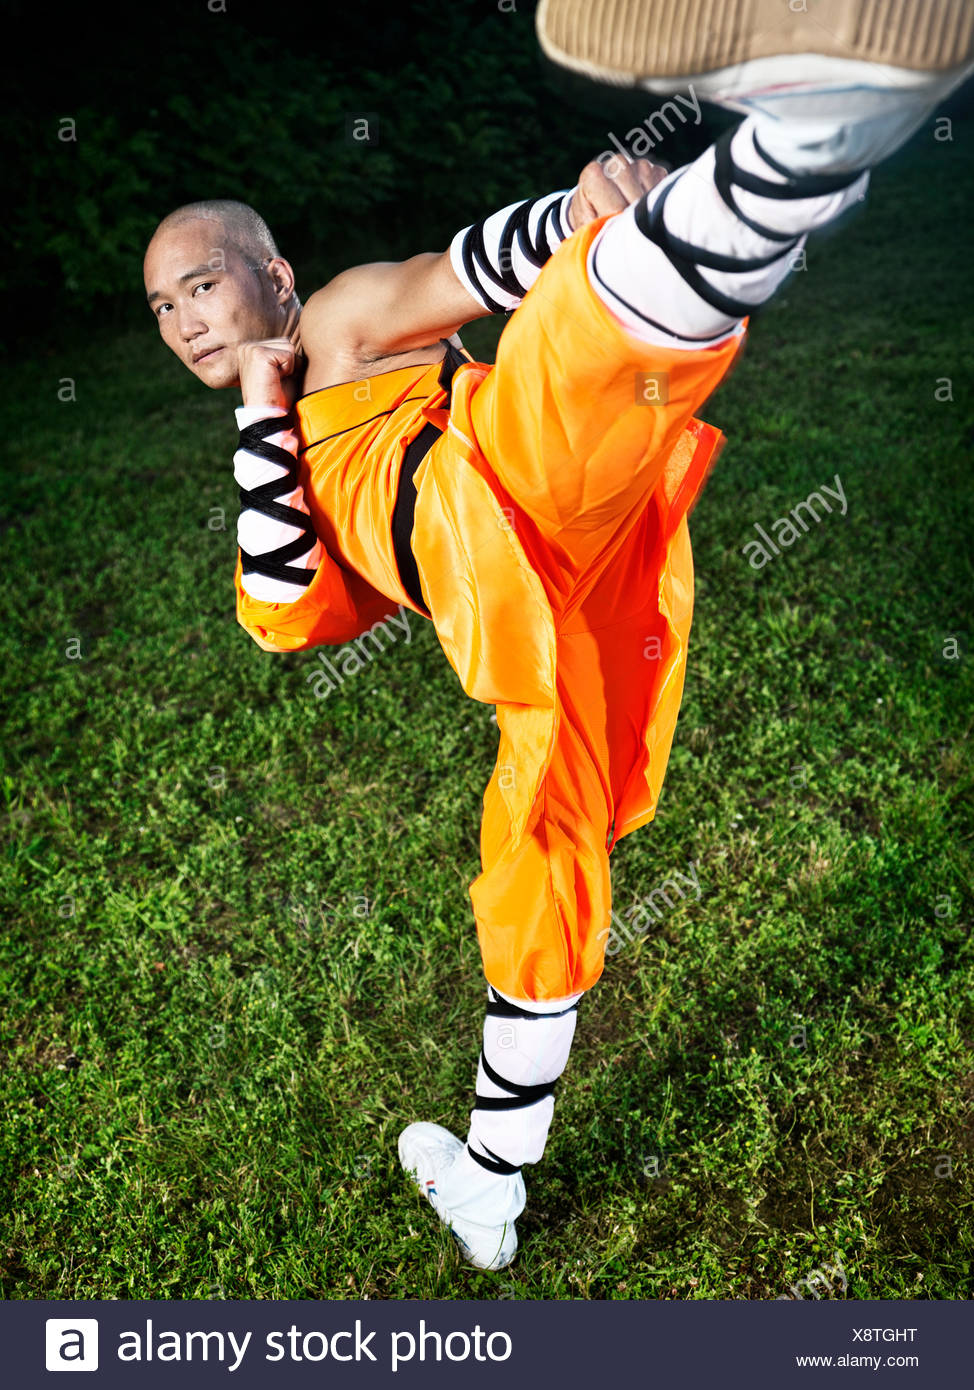 Shaolin warrior monk doing Chuai Tui side kick - Stock Image